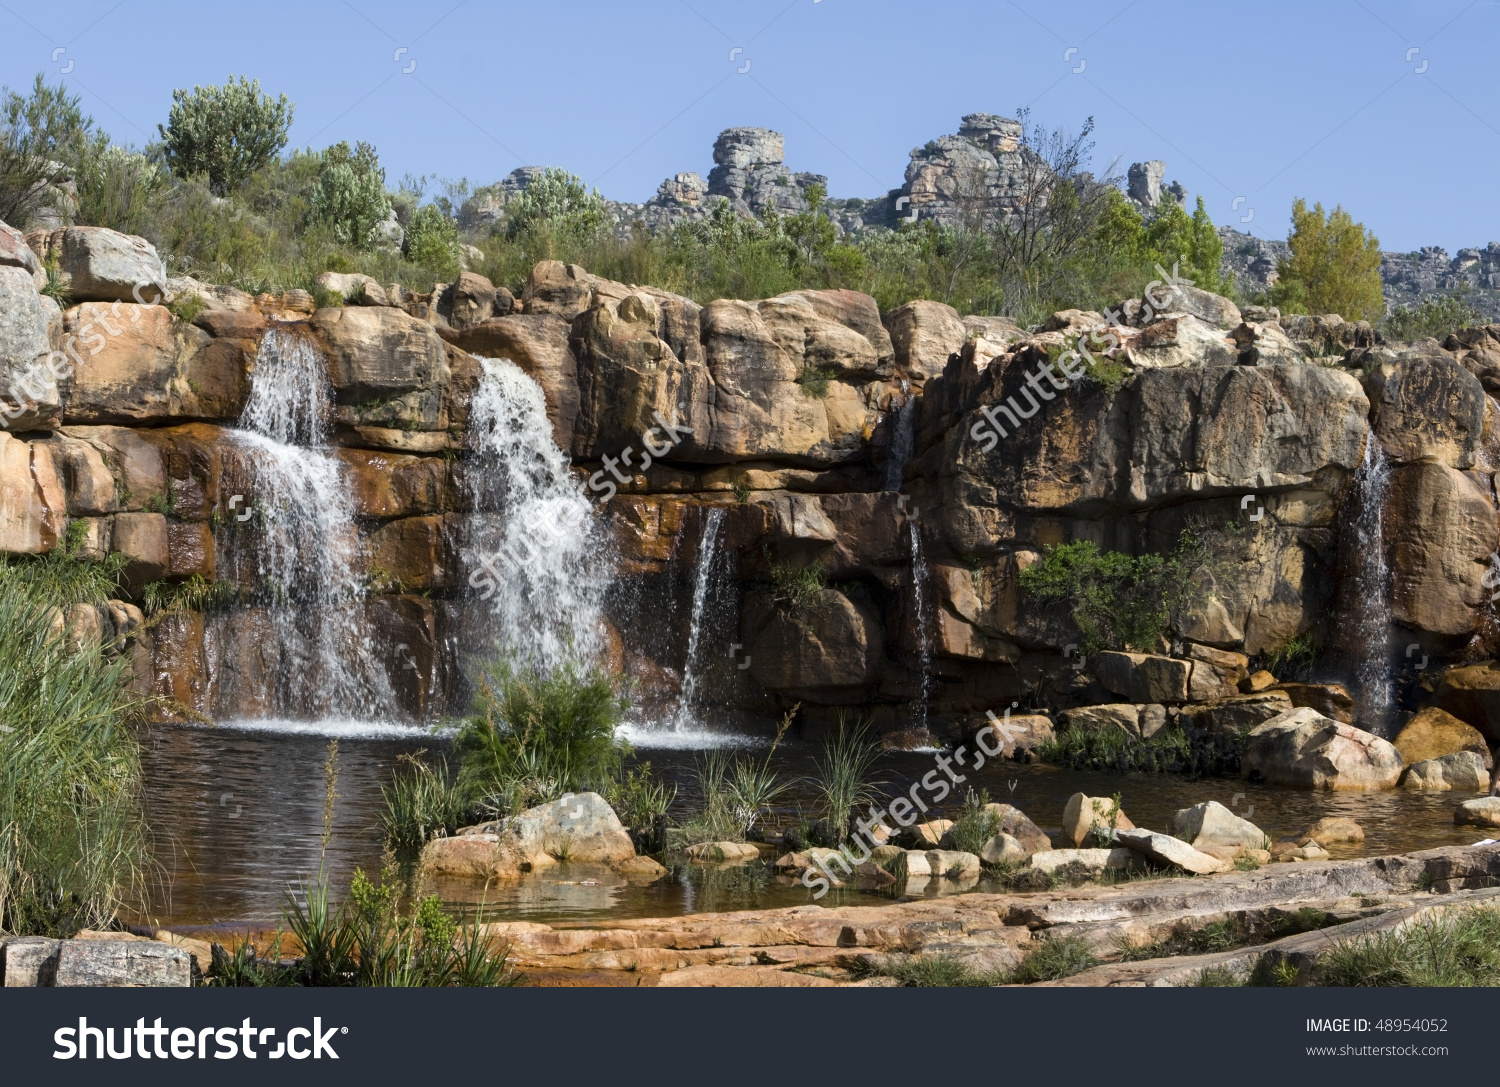 Panorama Of A Waterfall In The Cederberg Mountains Of South Africa.